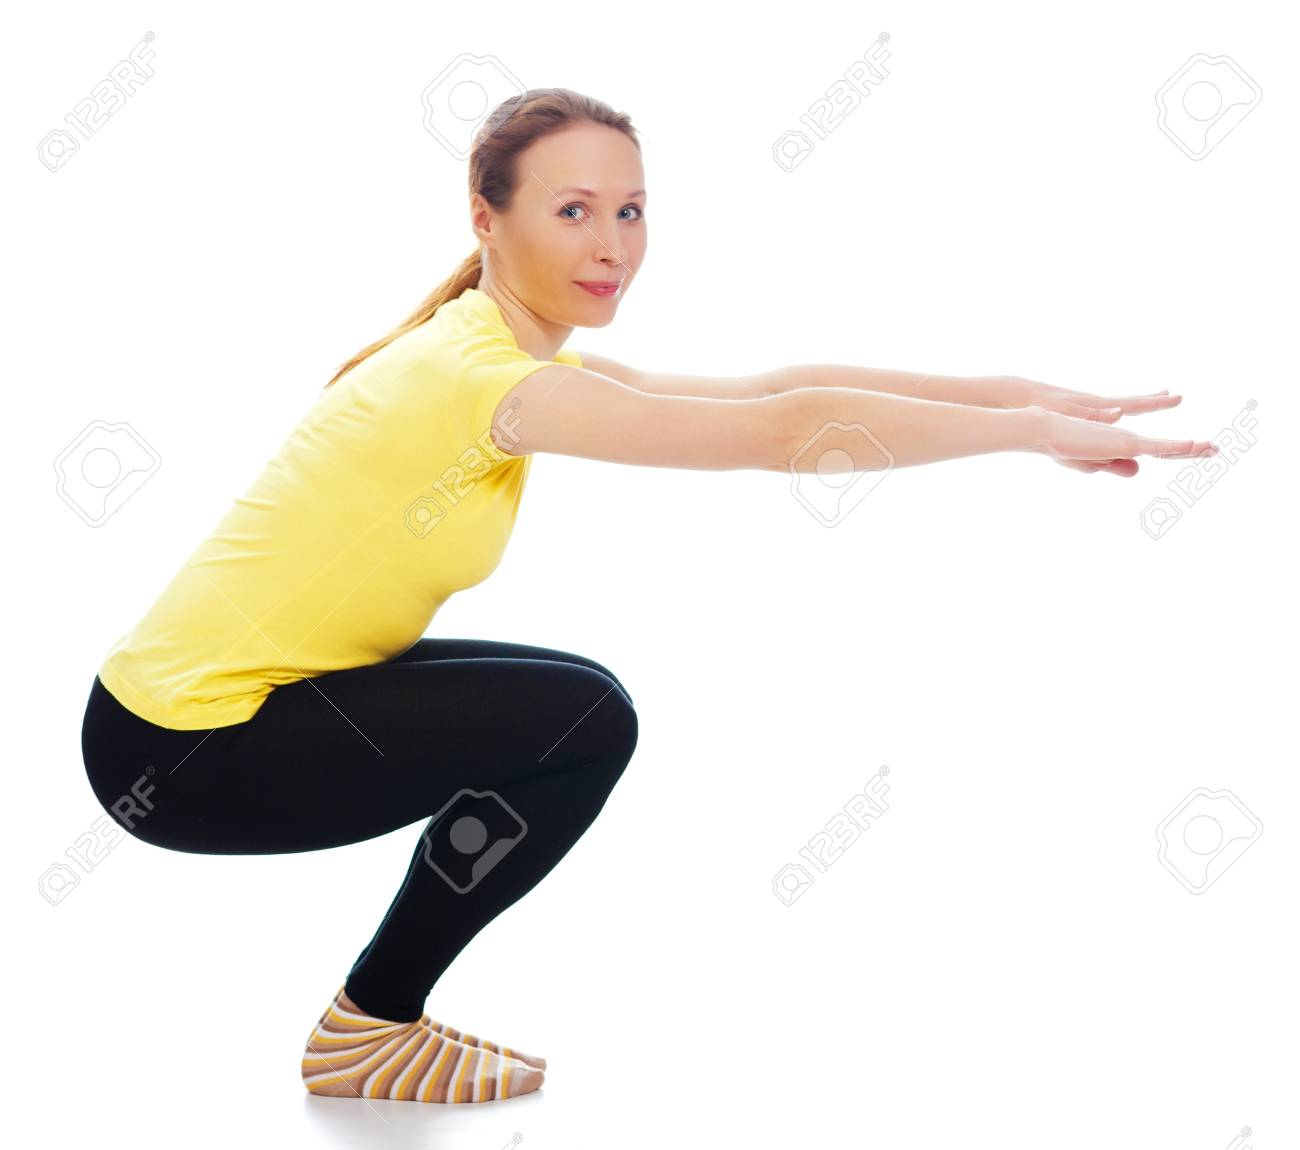 Young woman doing yoga exercise on a white background. Stock Photo - 19193954